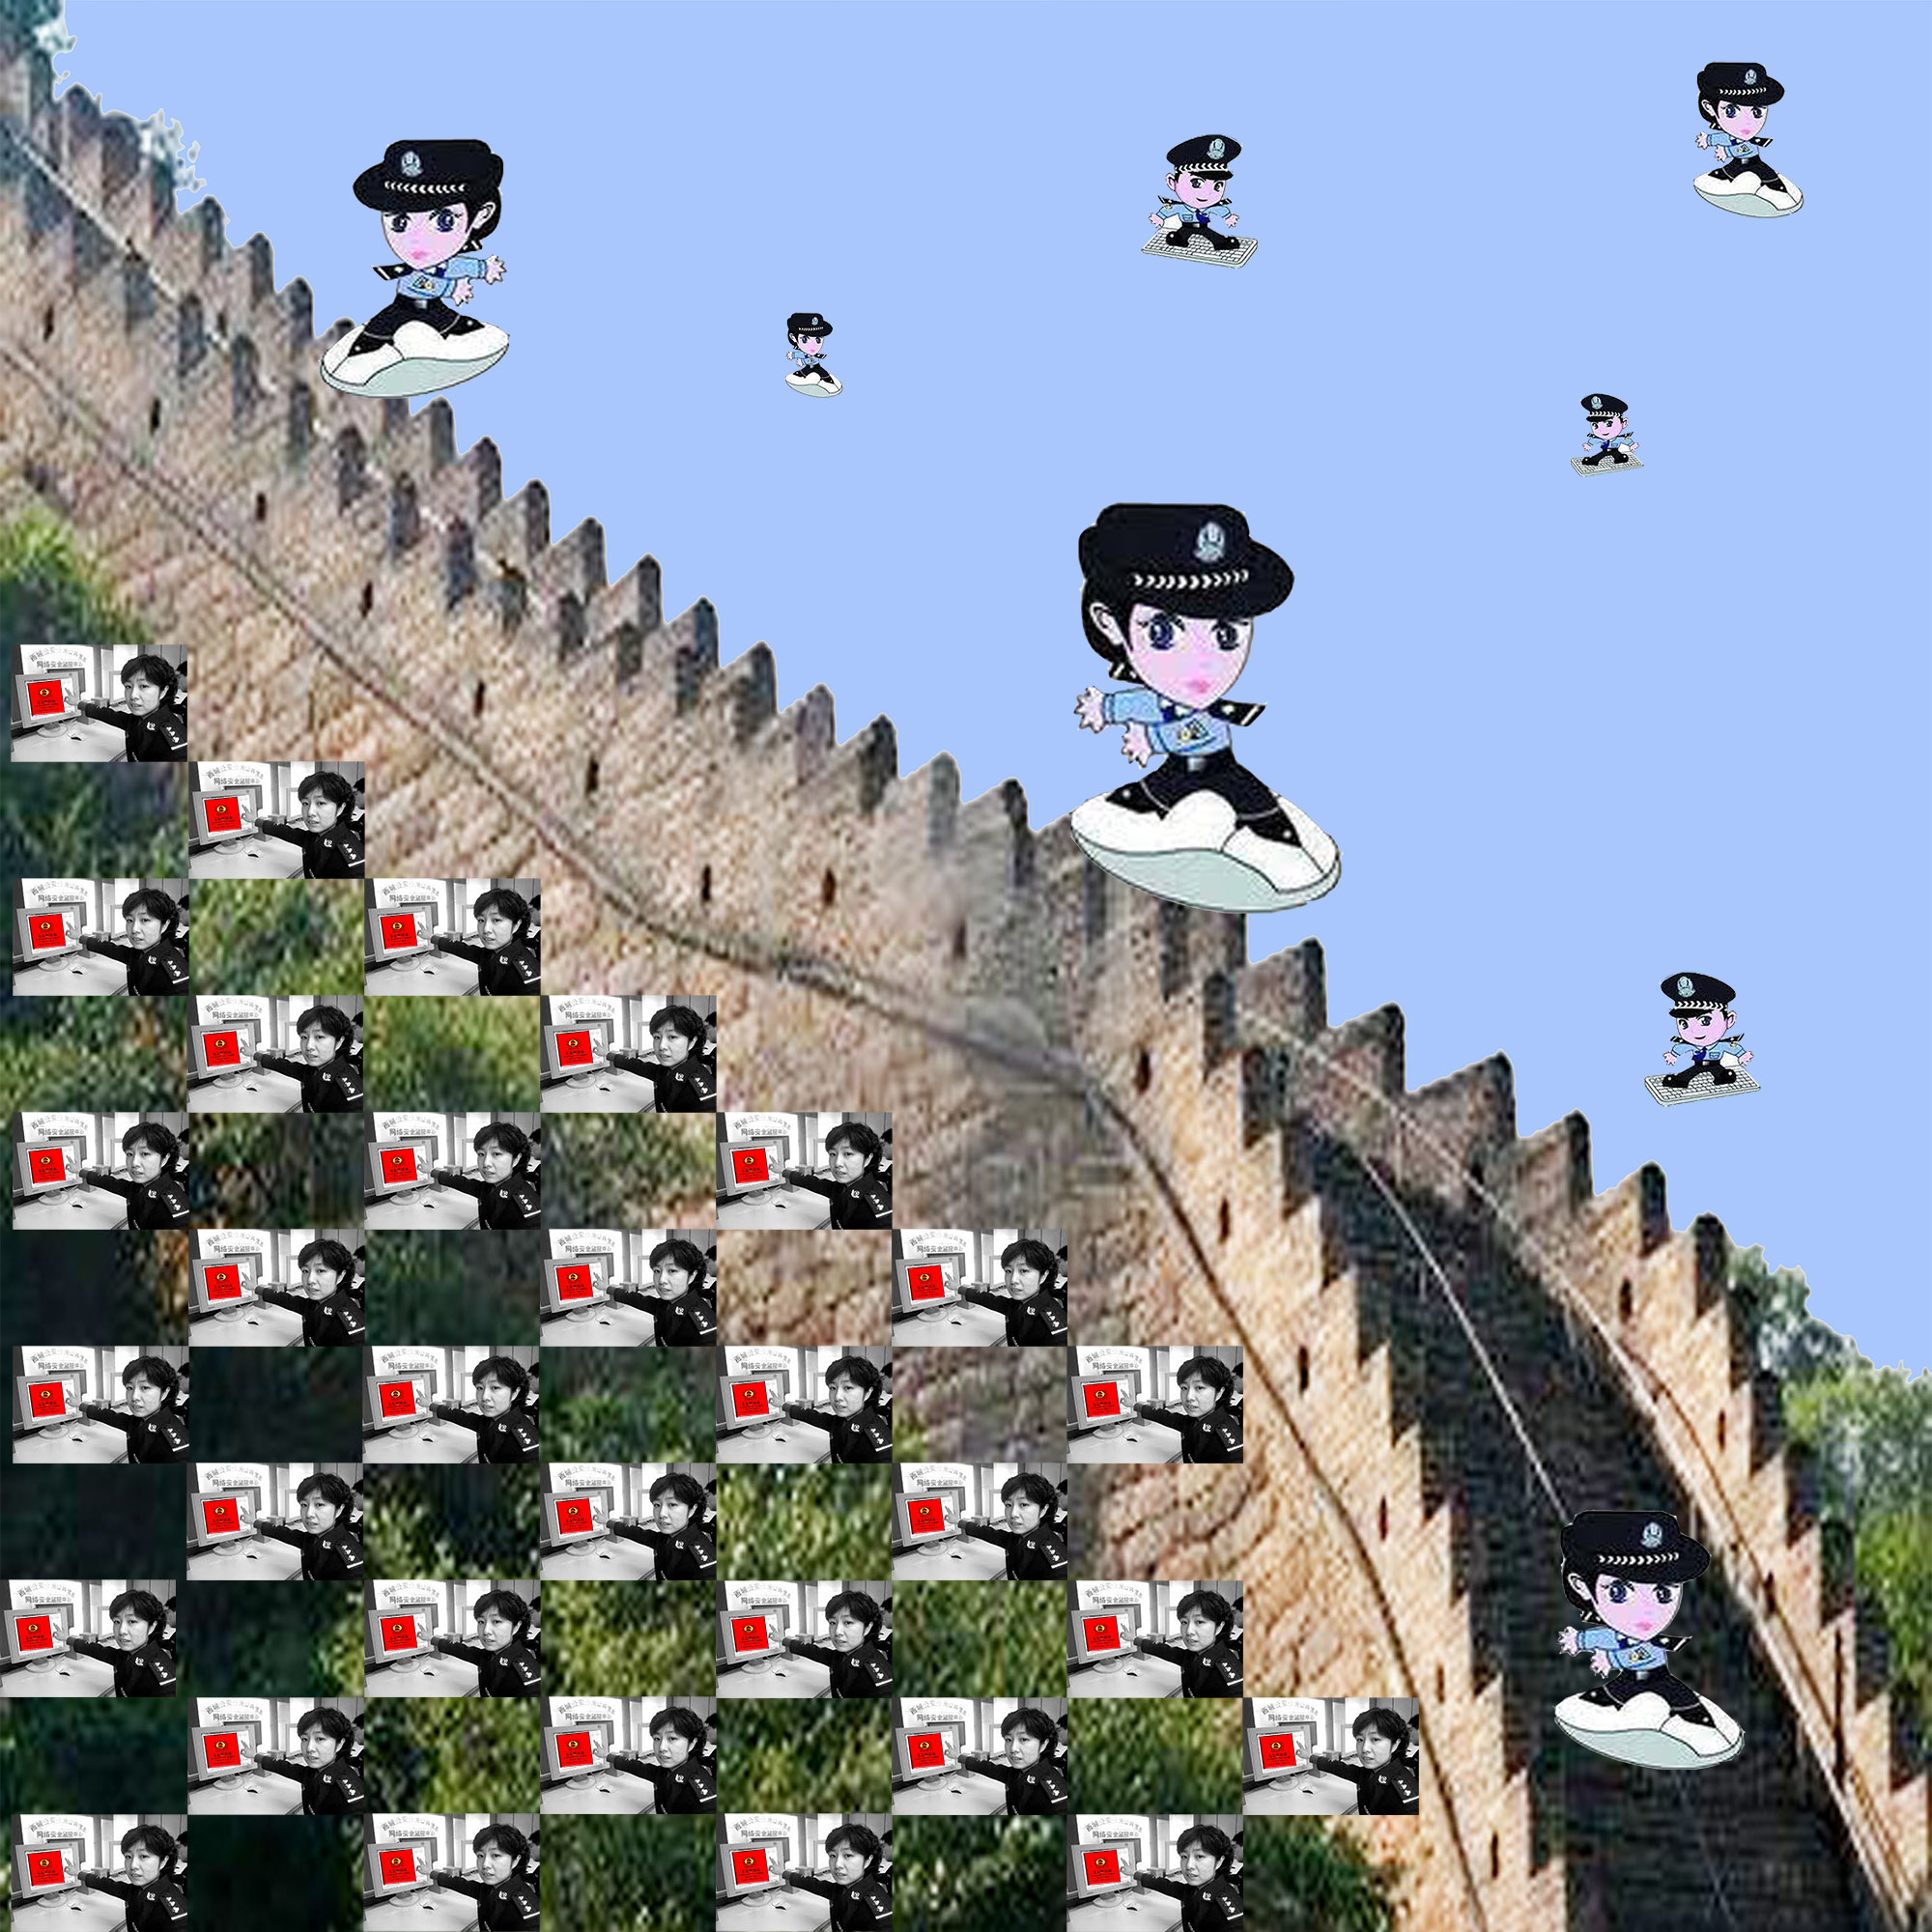 Harmonizing at The Great Wall